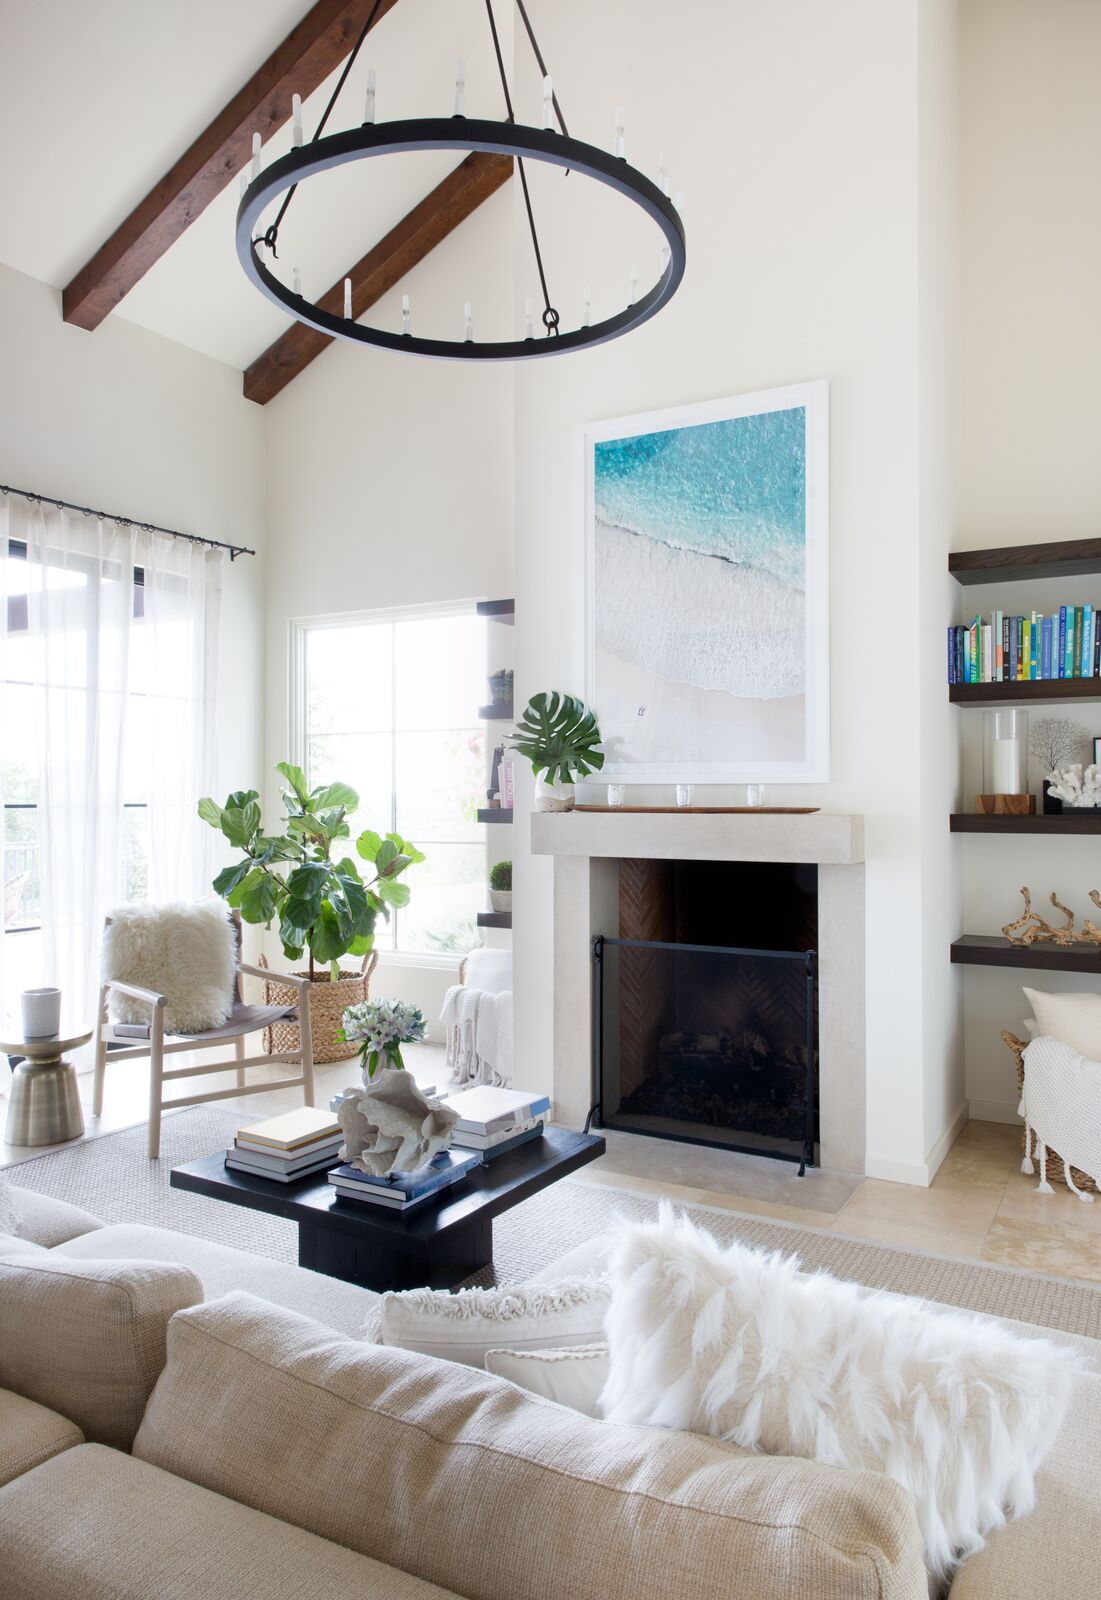 Simple Room Design: 21 Easy, Unexpected Living Room Decorating Ideas